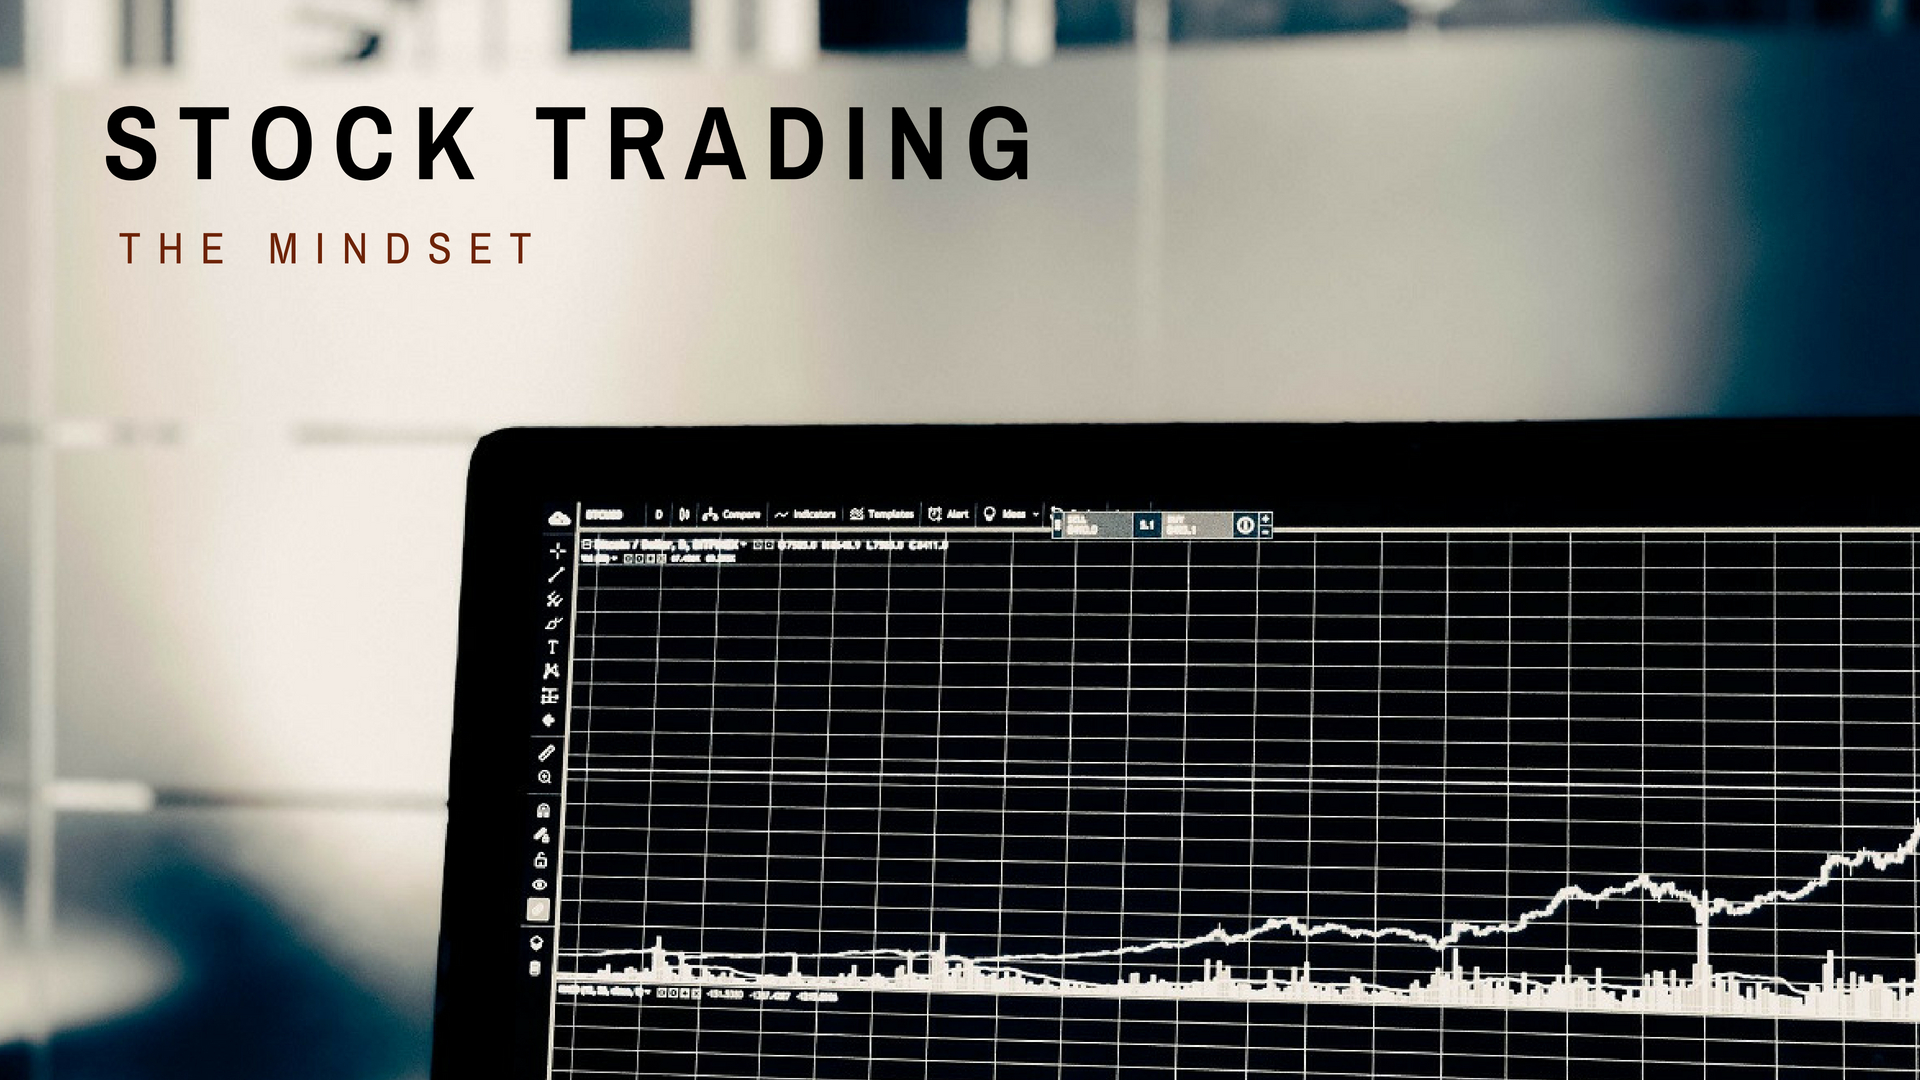 Poster words -stock trading, the mindset with image of laptop screen displaying line graphs